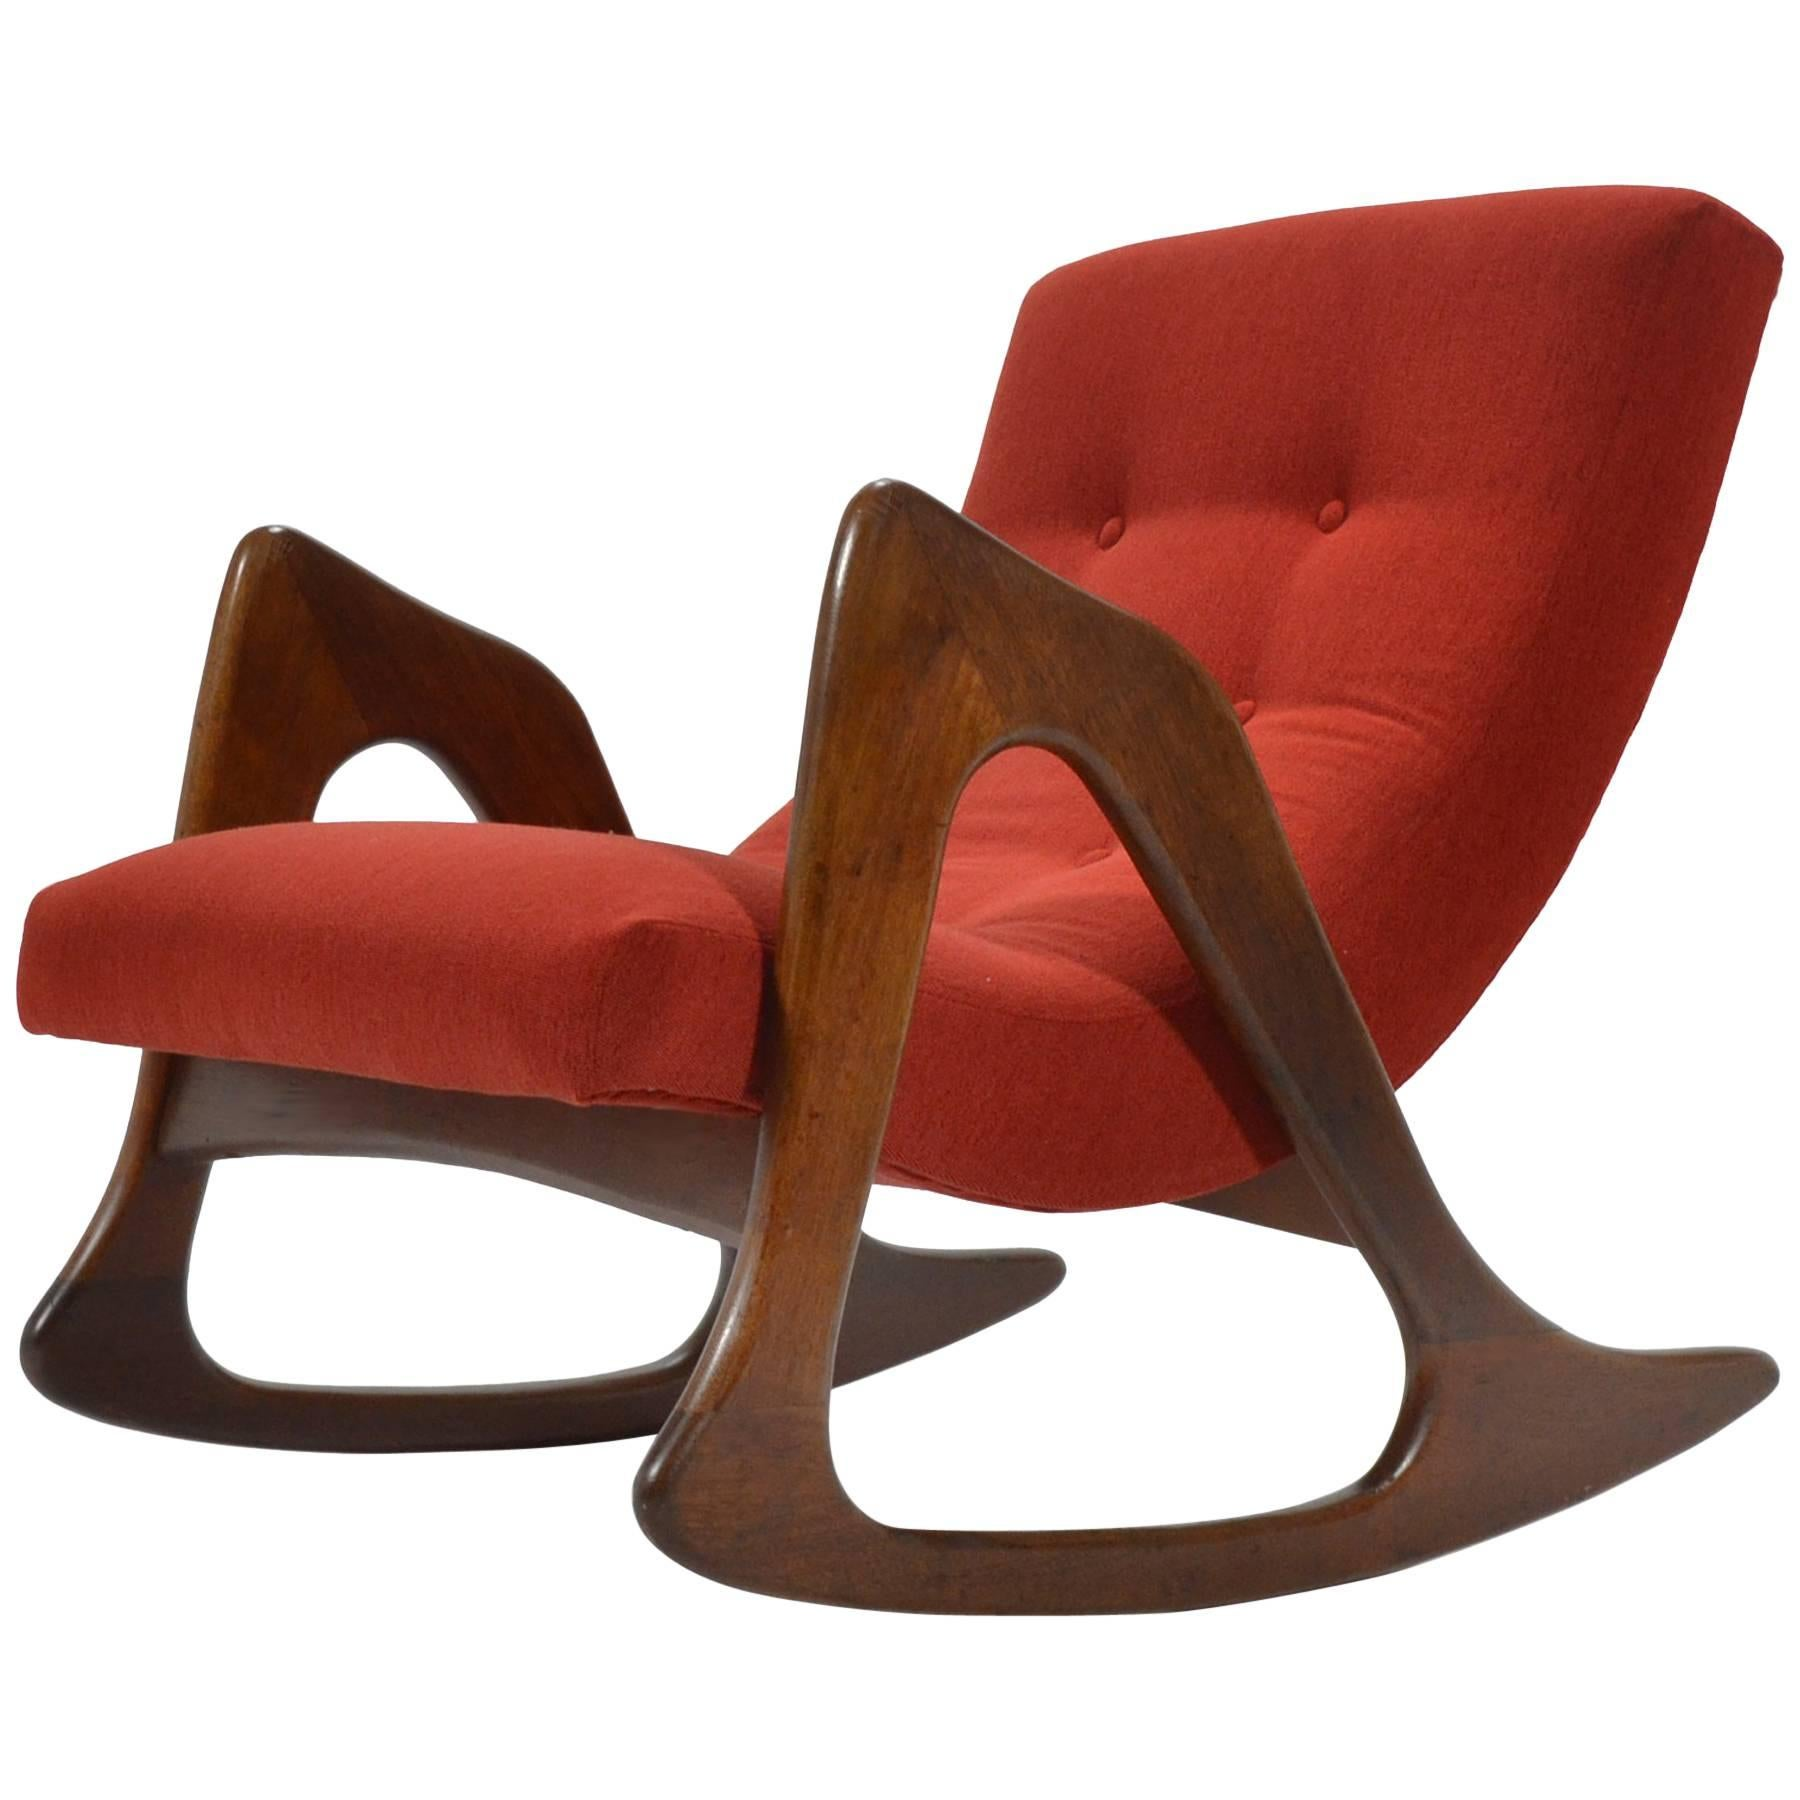 Superb Adrian Pearsall Rocking Chair By Craft Associates For Sale